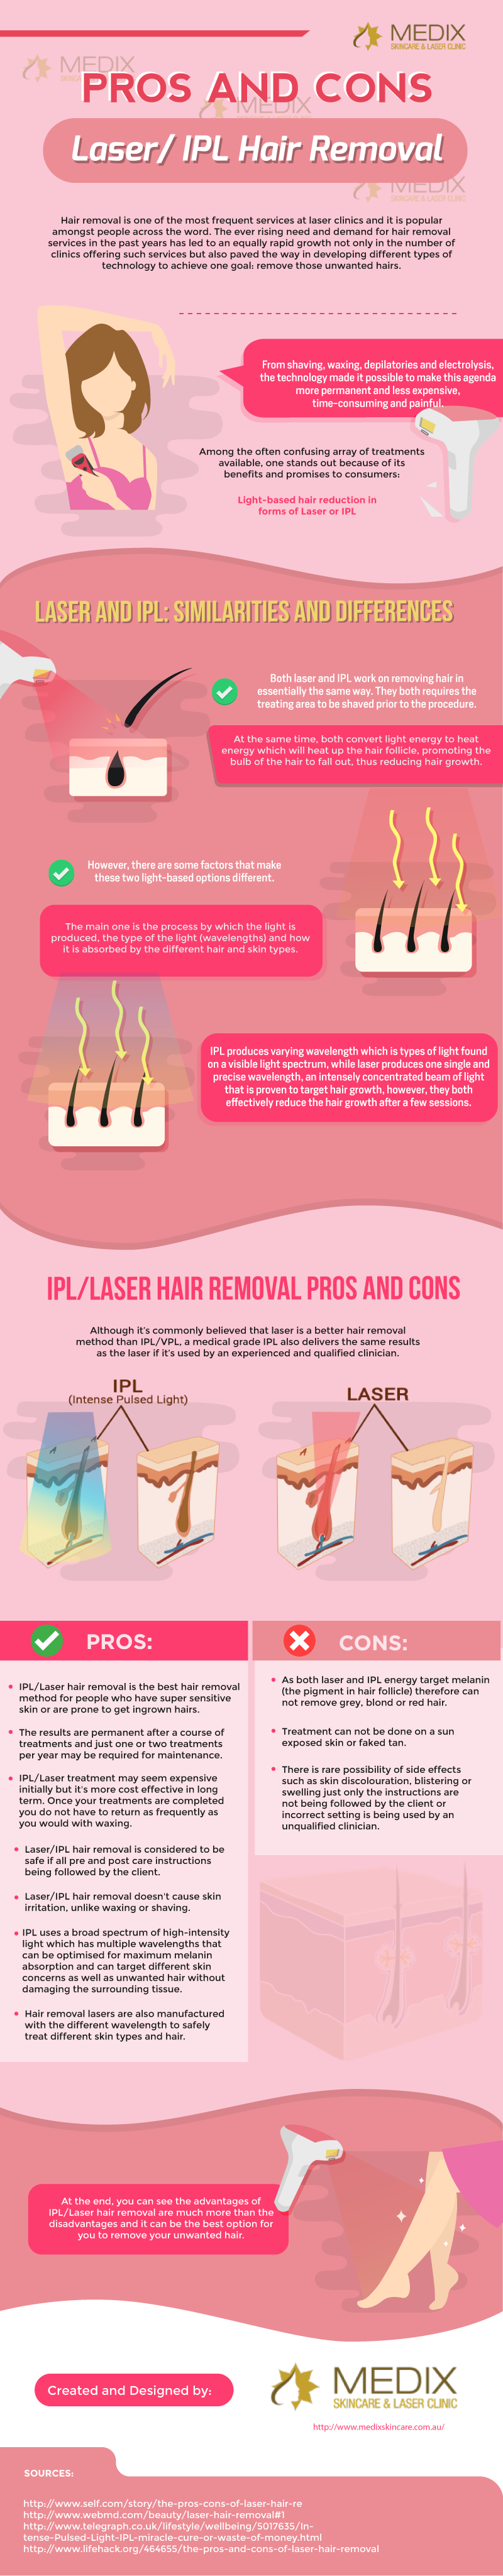 Is Laser Ipl Hair Removal The Best Option Infographic Ipl Hair Removal Hair Removal Hair Transplant Cost